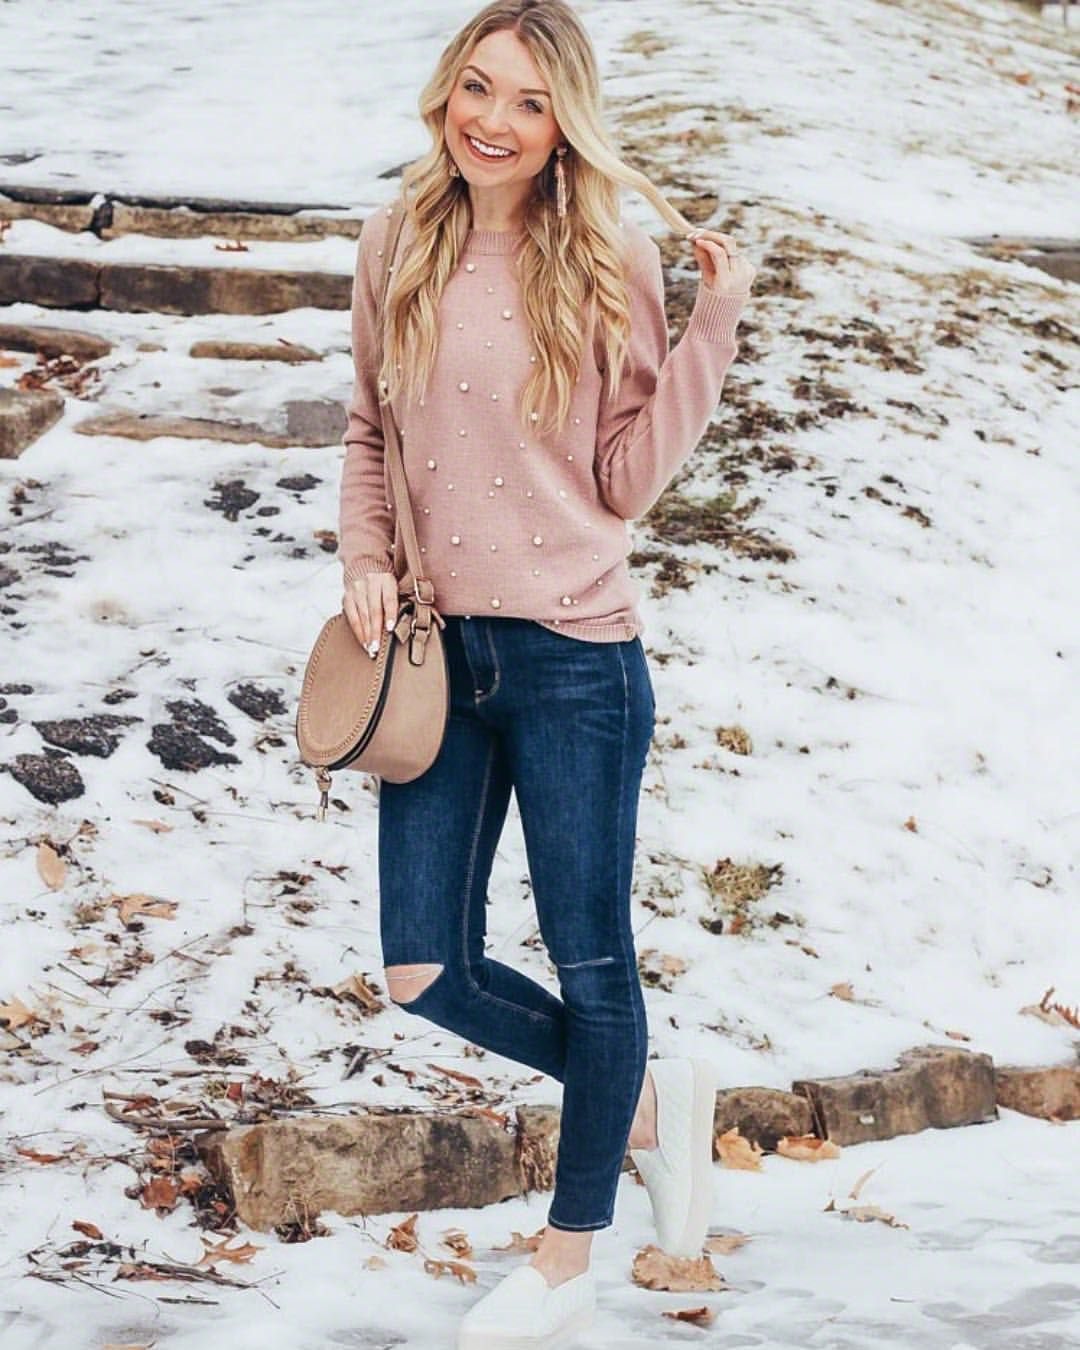 Pearl Sweater Pink Sweater Distressed Jeans White Sneakers Crossbody Purse Winter O Valentines Day Outfits Casual Girly Outfits Cold Day Outfits